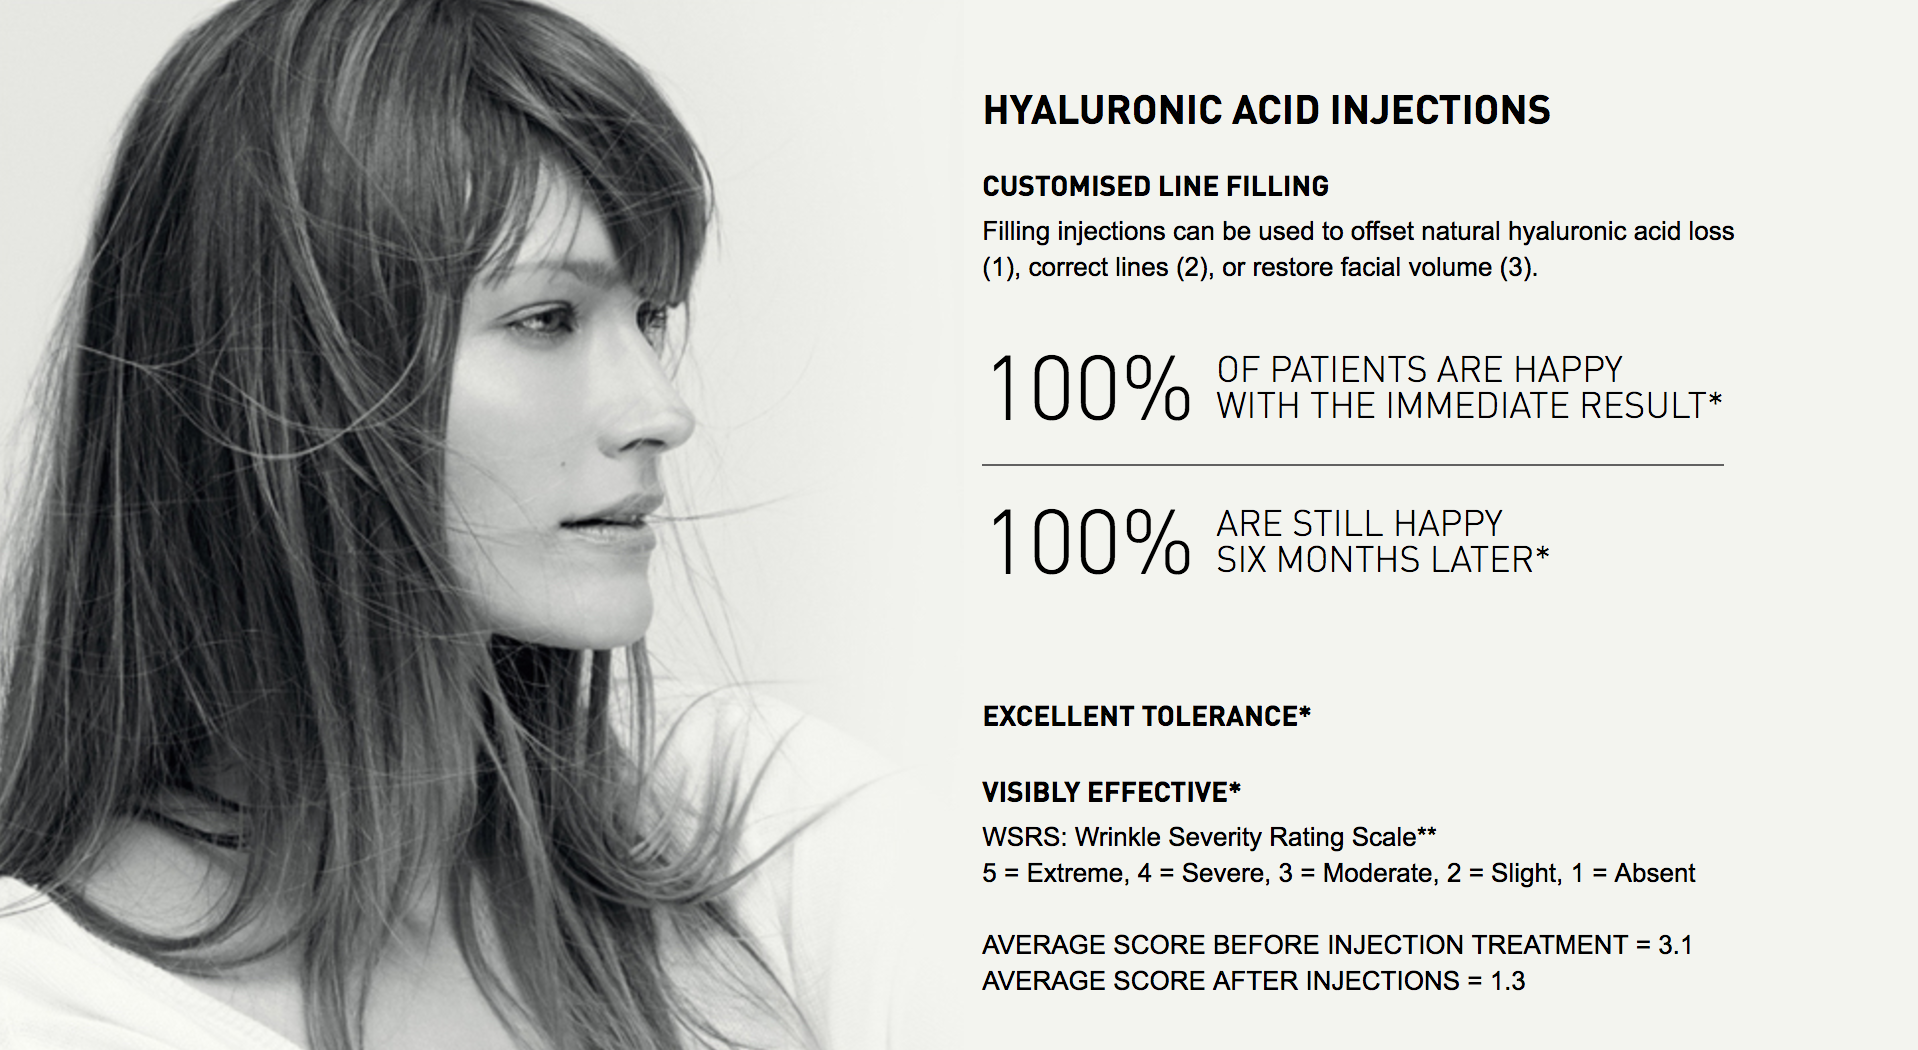 HYALURONIC ACID INJECTIONS | Global Anti-Aging Medical